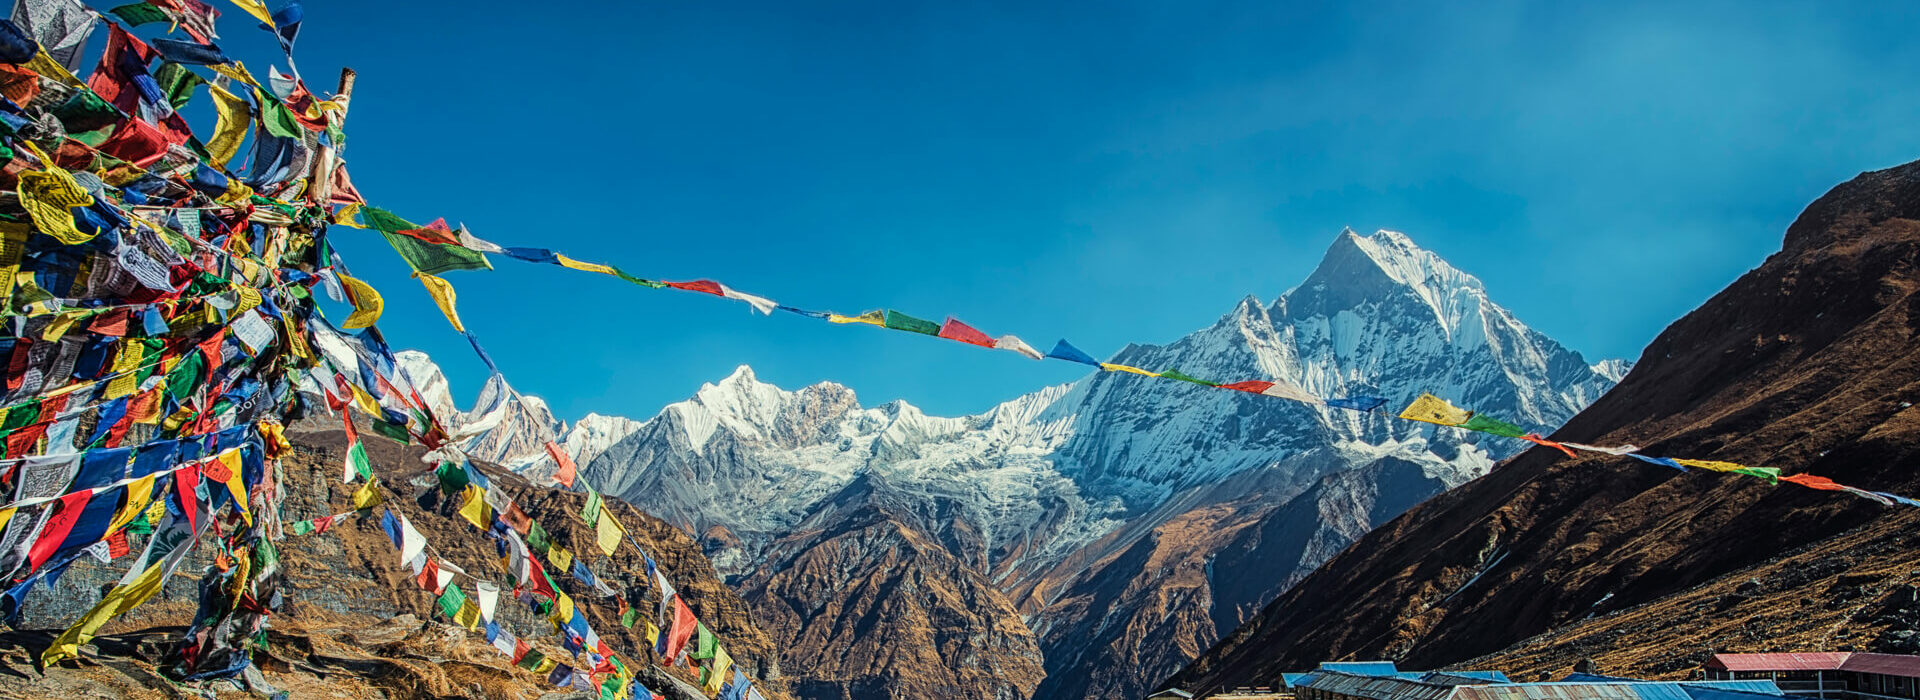 Annapurna Base Camp with Earth's Edge 4